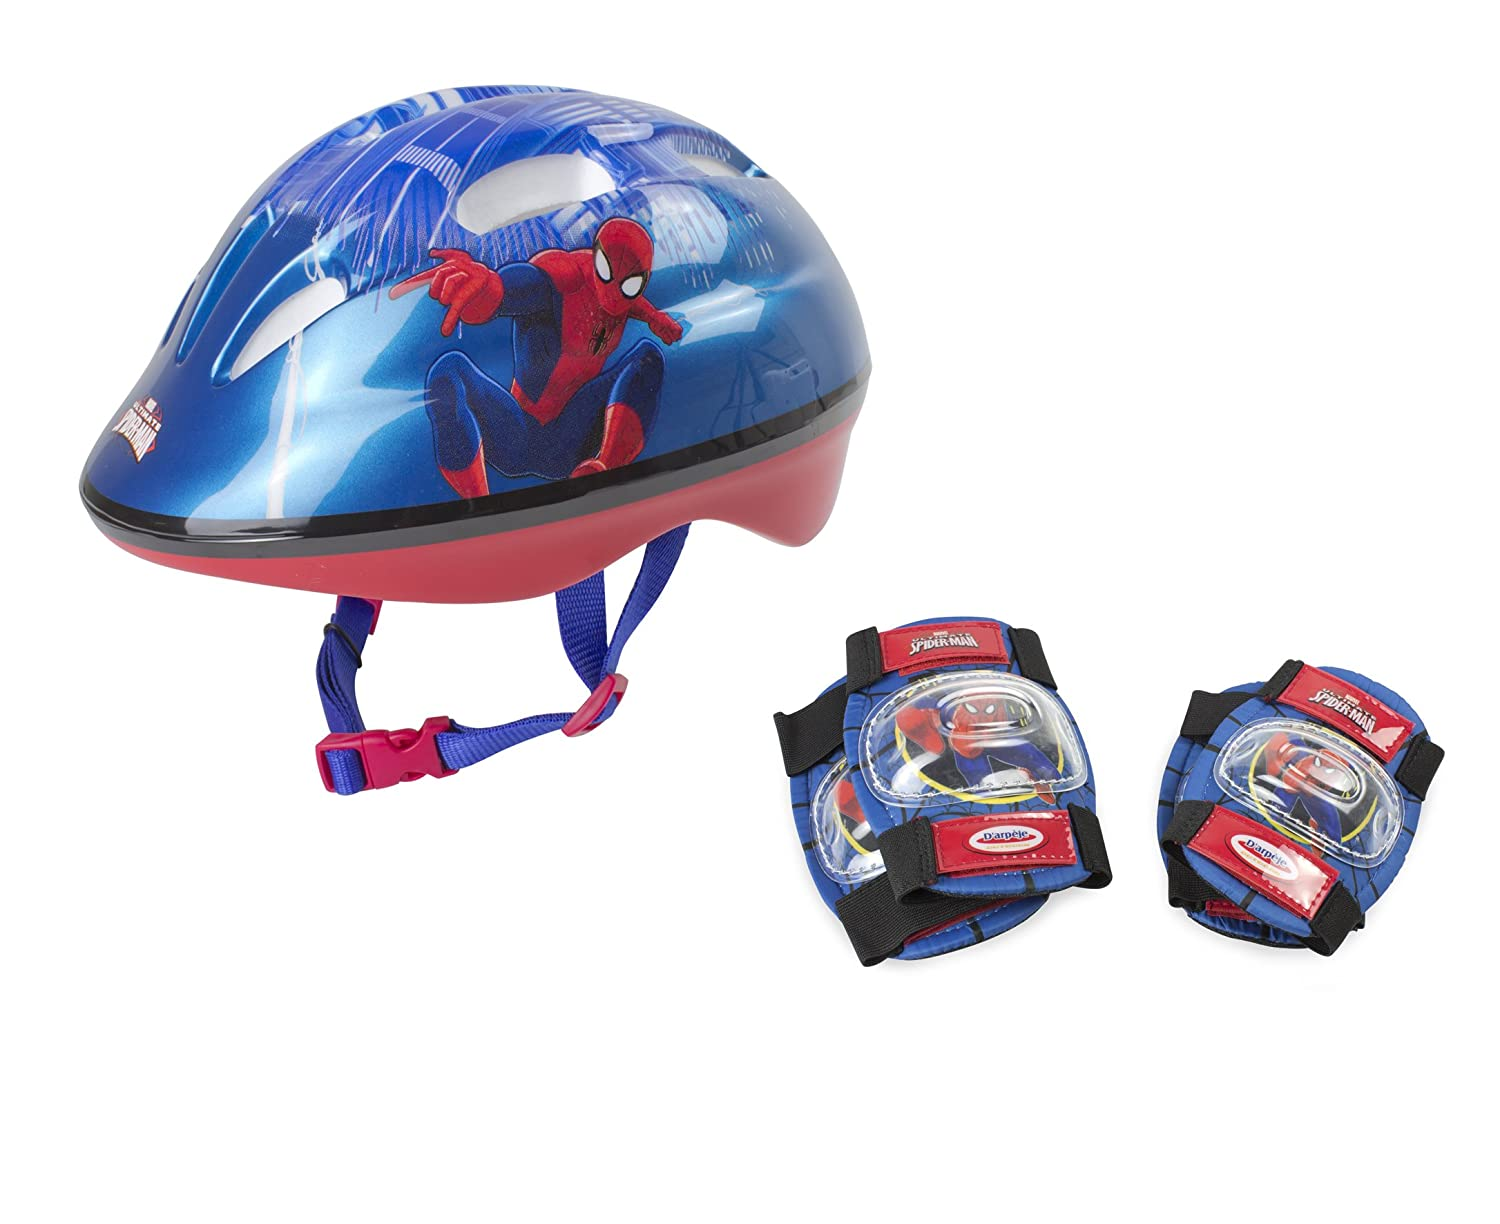 Marvel Kinder OSPI204 D'arpeje Spiderman Safety Set Helmet 2 Pad, deep Blue, S DARPA|#D' arpeje Outdoor